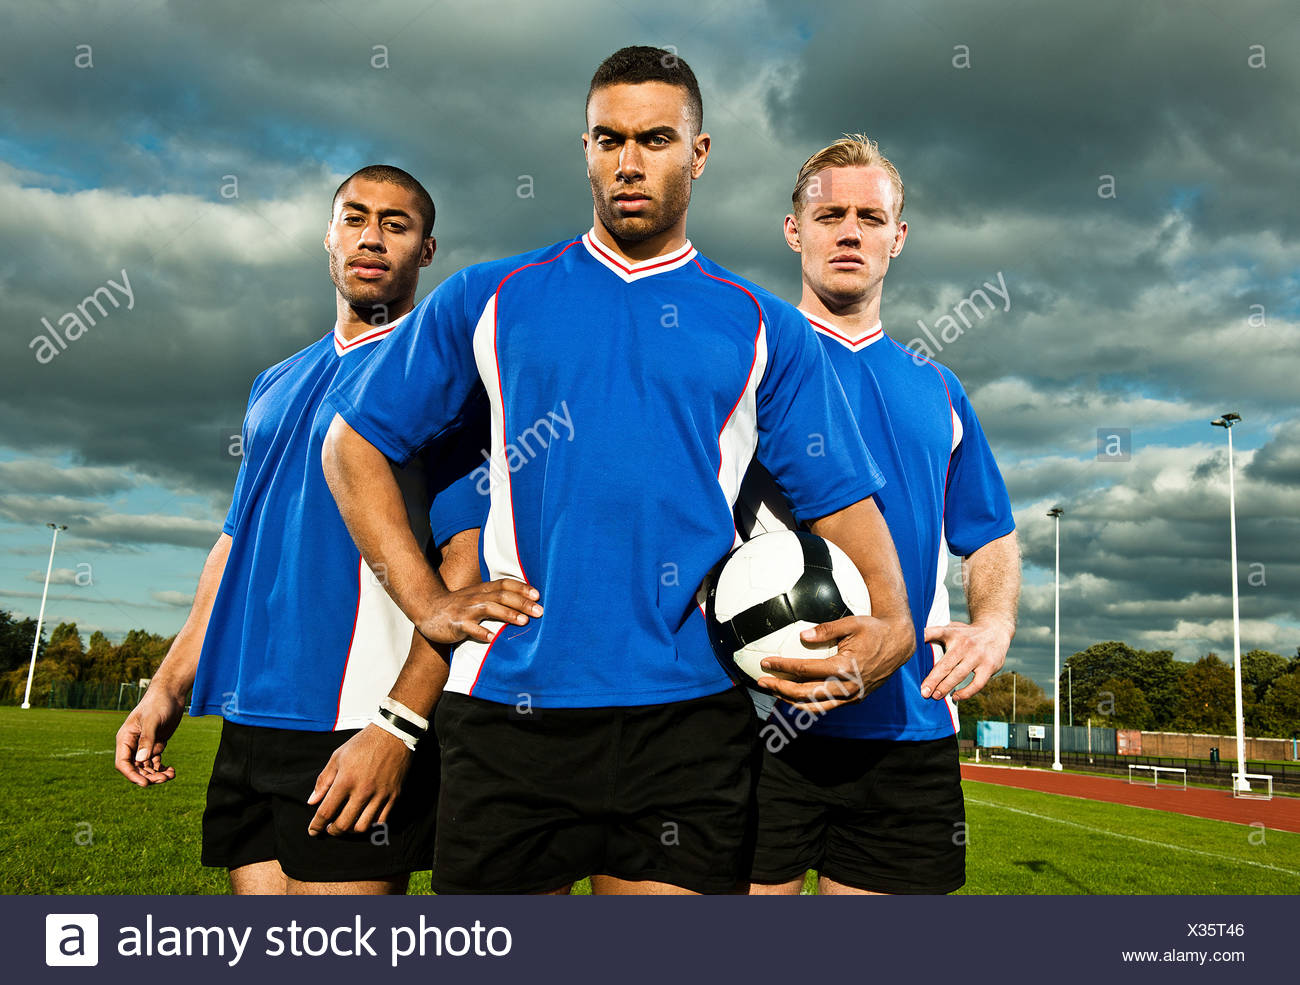 Soccer players on pitch, portrait - Stock Image